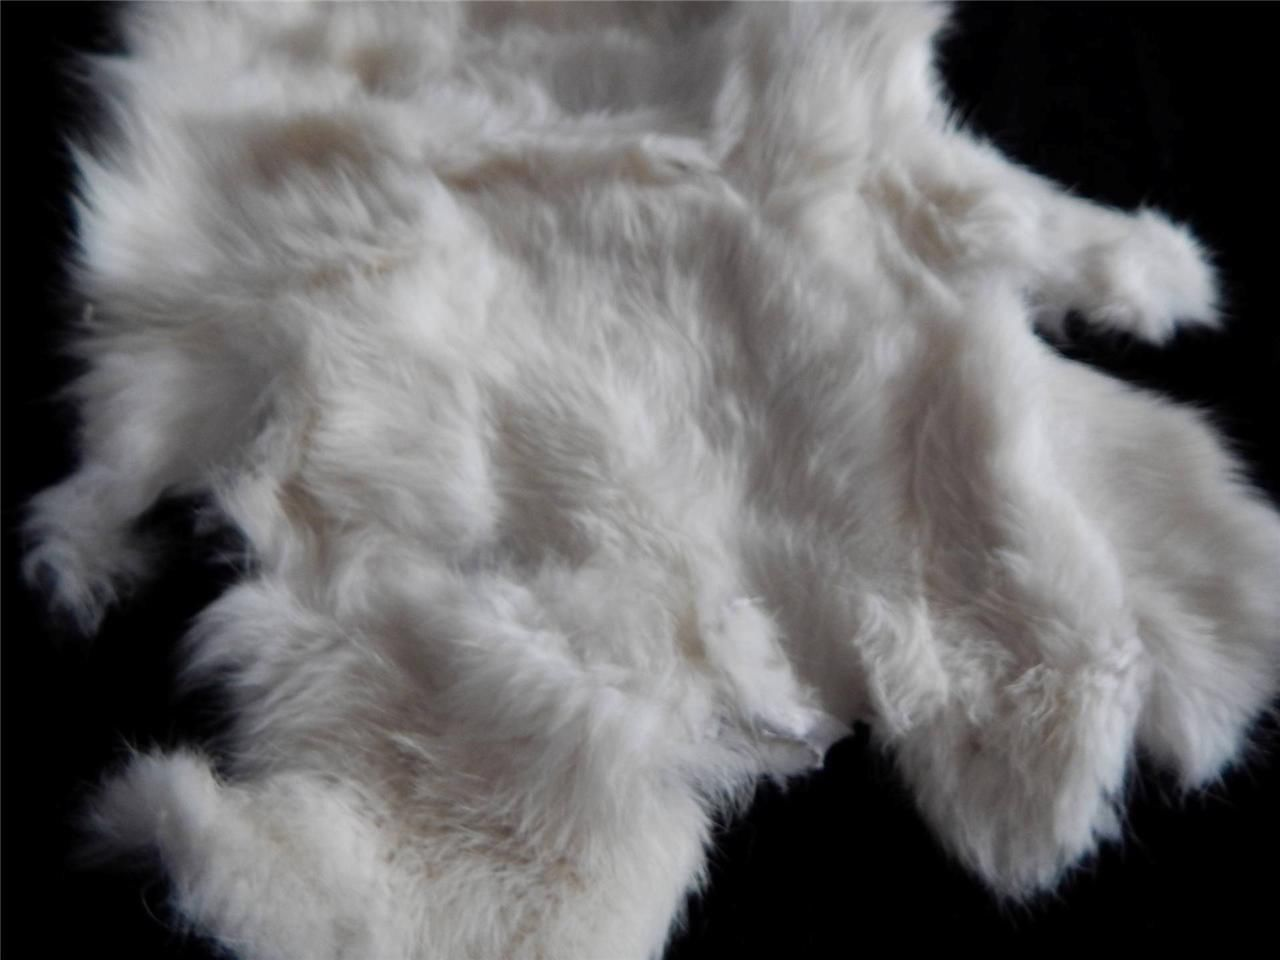 Rabbit Skin Fur Pelt Tanned Soft Easter Christmas Crafts Display Authentic